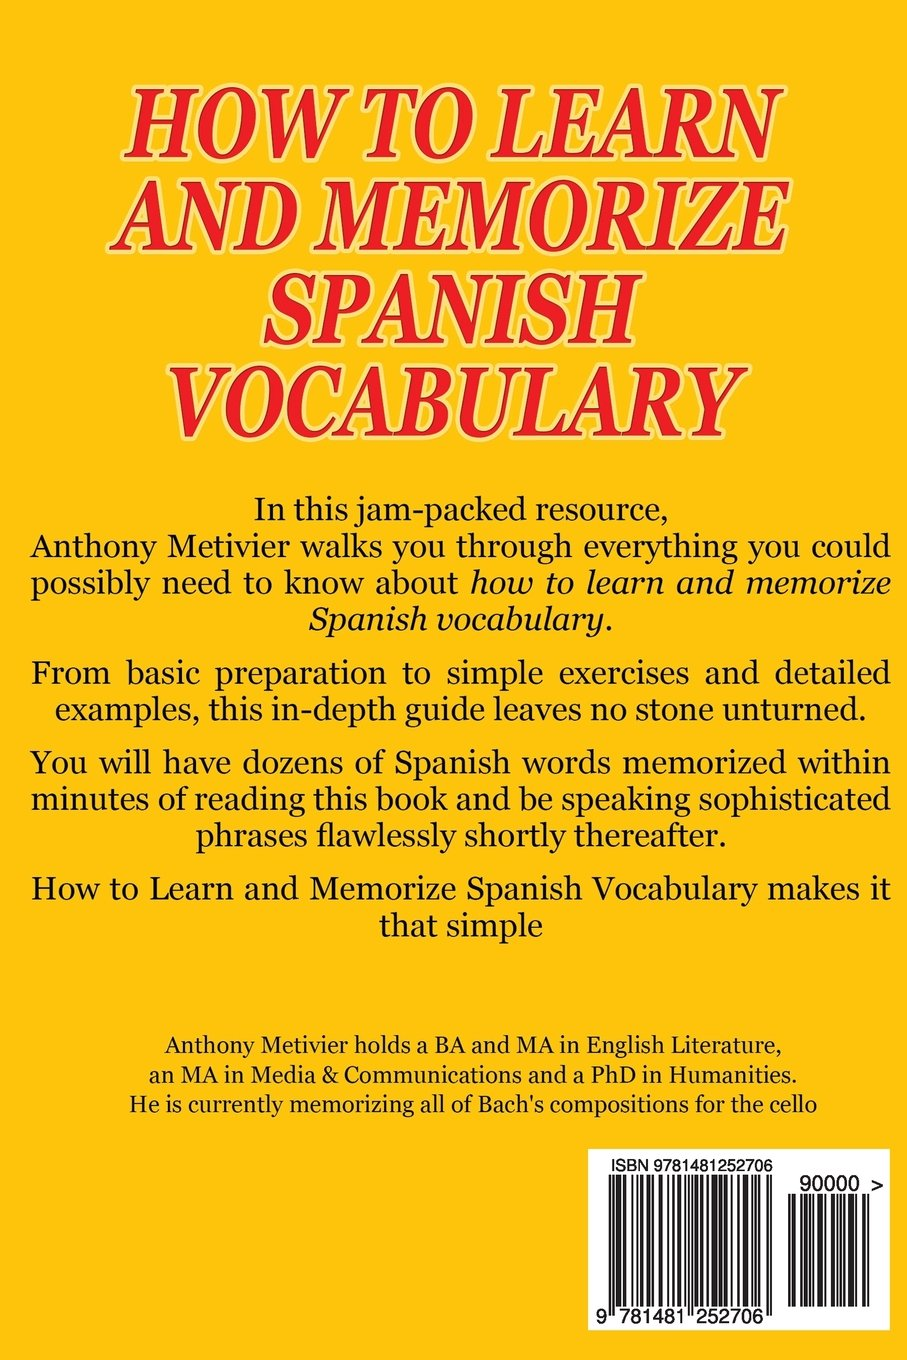 How To Learn And Memorize Spanish Vocabulary (spanish Edition): Anthony  Metivier: 9781481252706: Amazon: Books